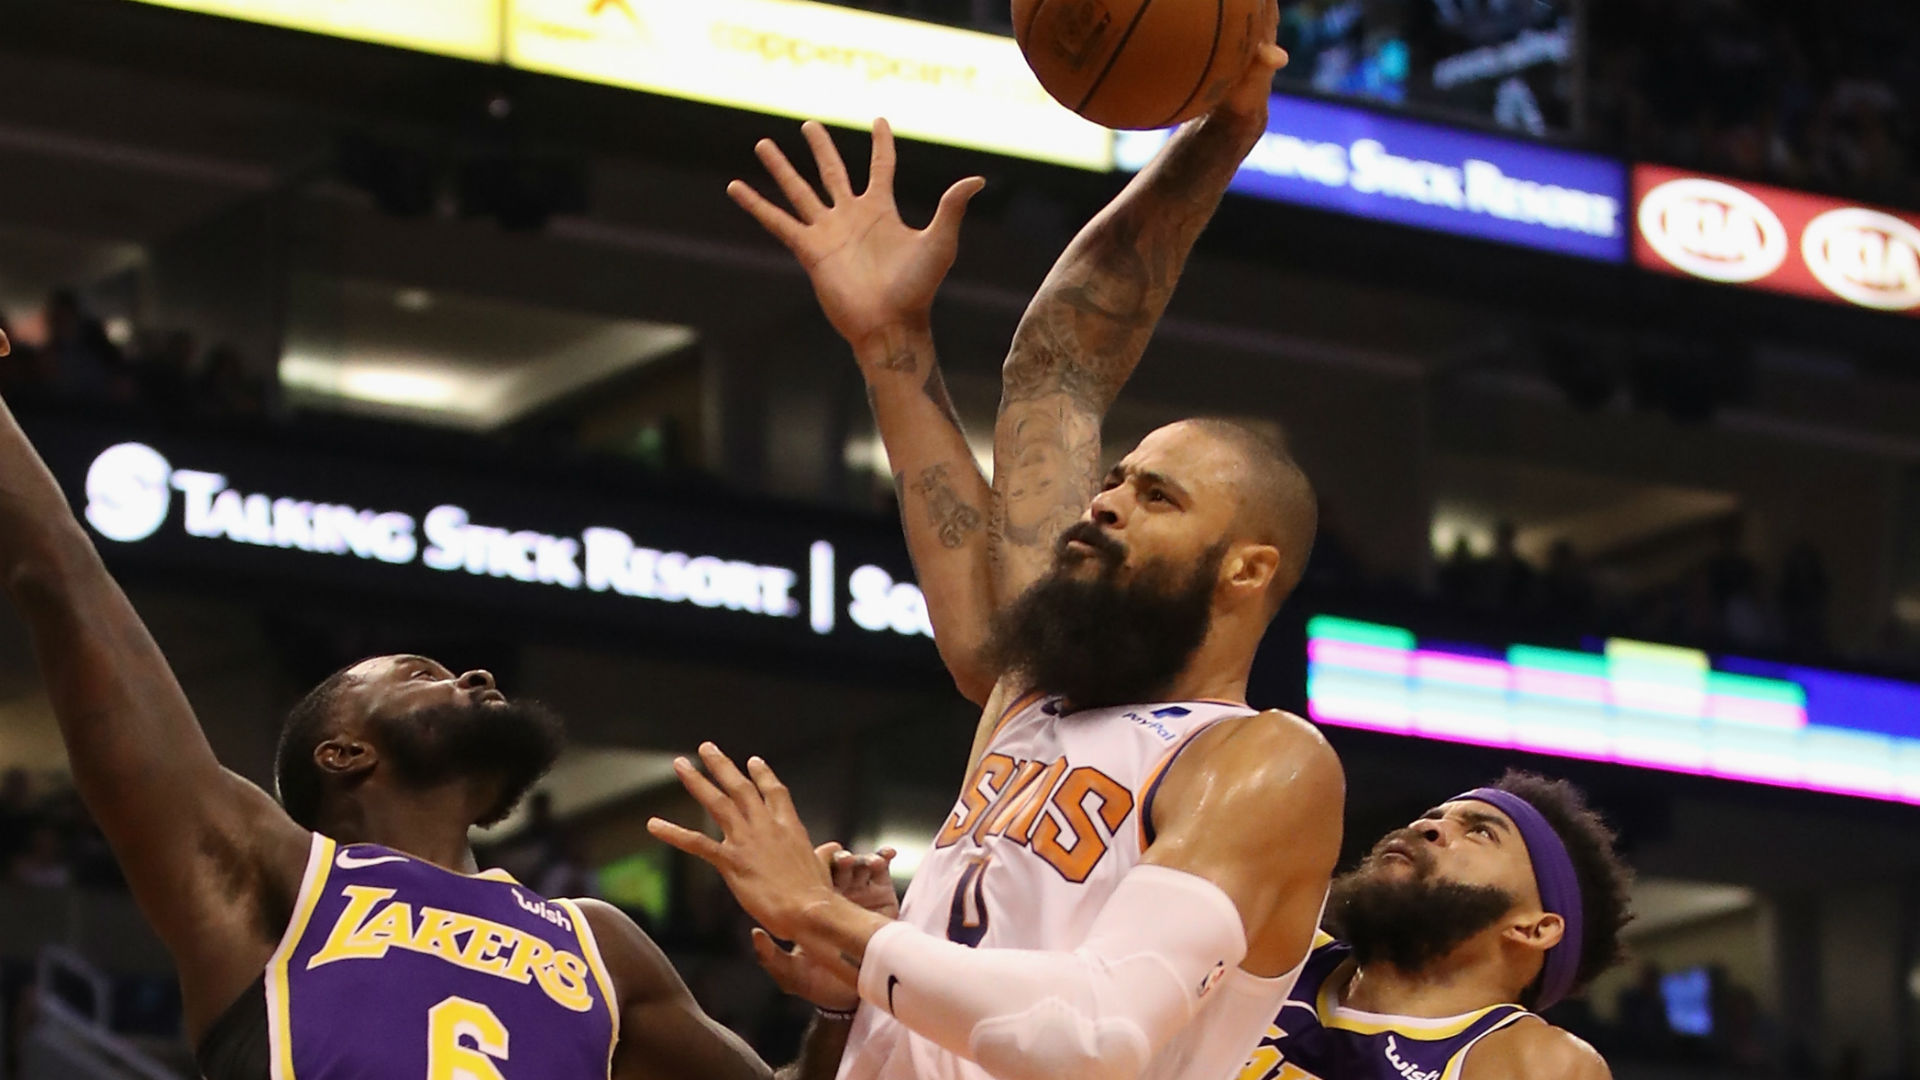 Suns' Chandler seeking buyout, hopes to join Lakers